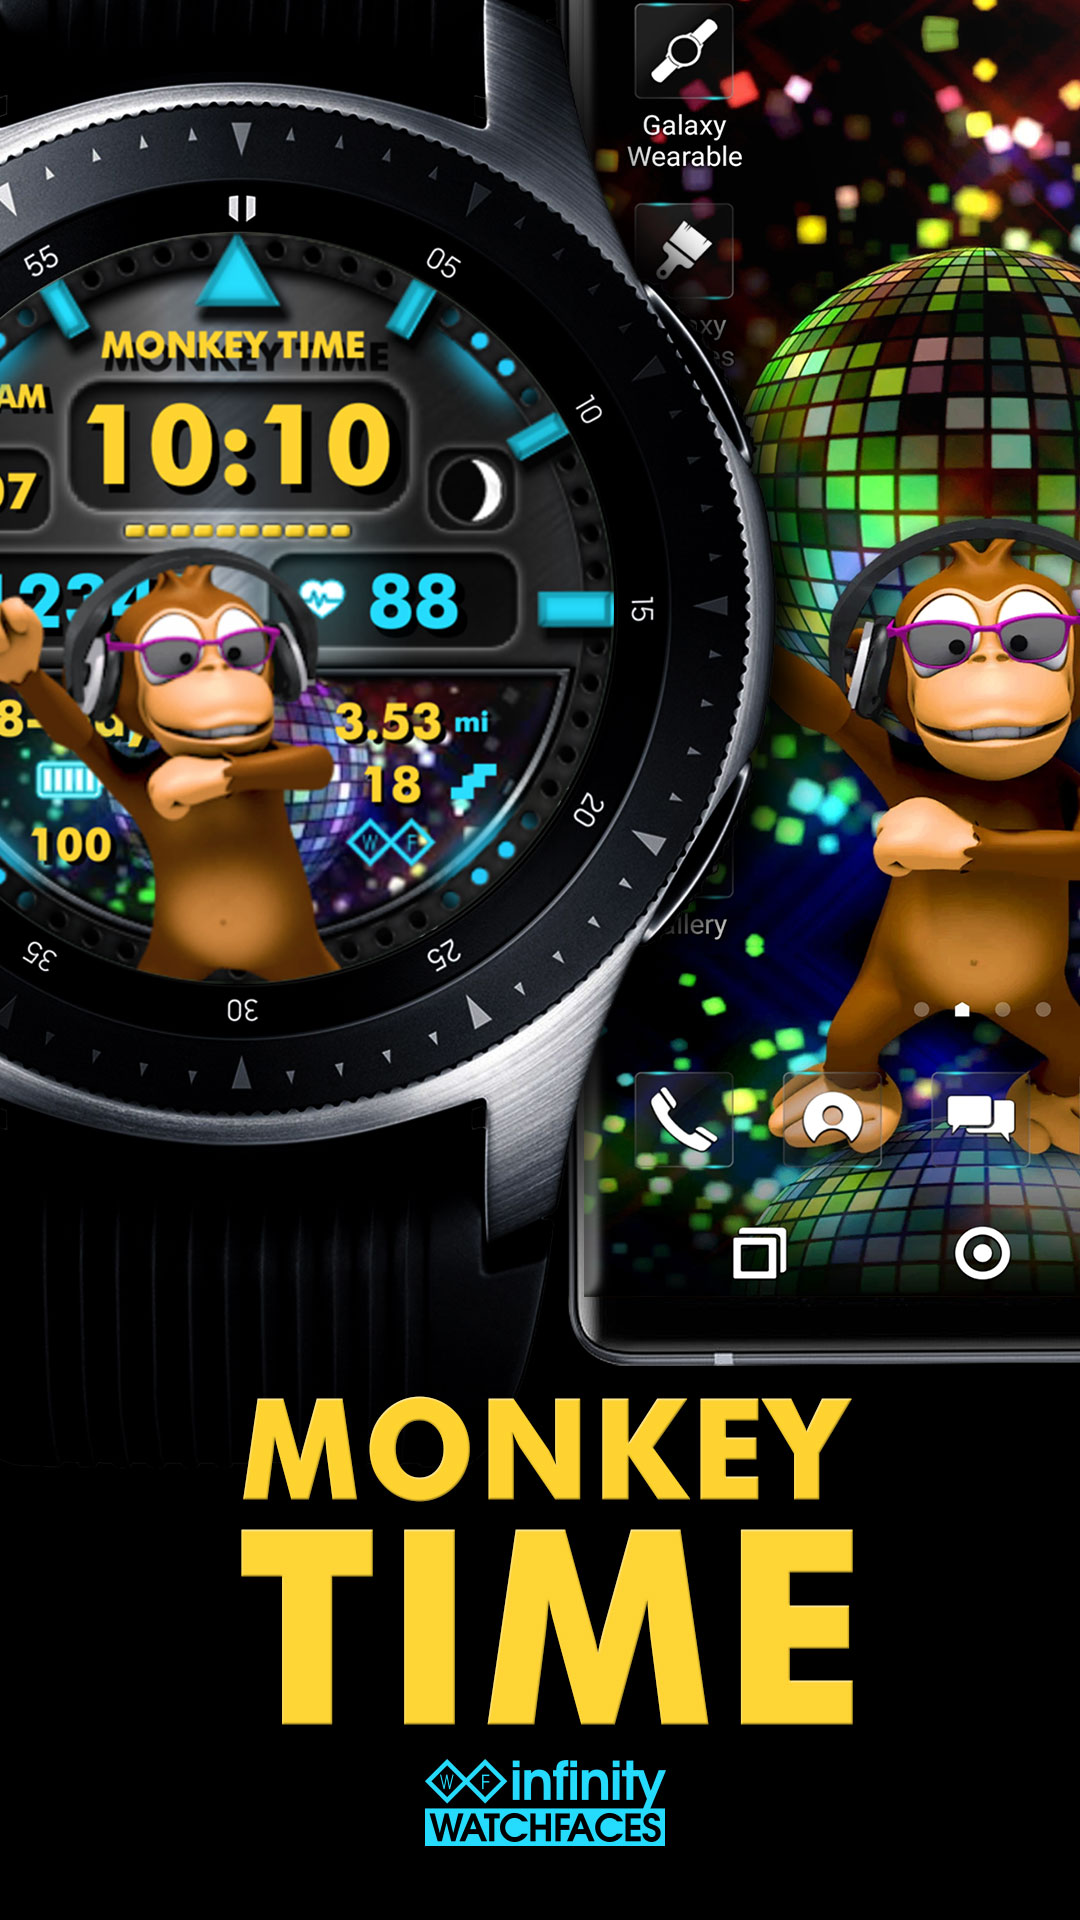 Samsung Galaxy Watch Faces & Galaxy Themes | Infinity Watchfaces